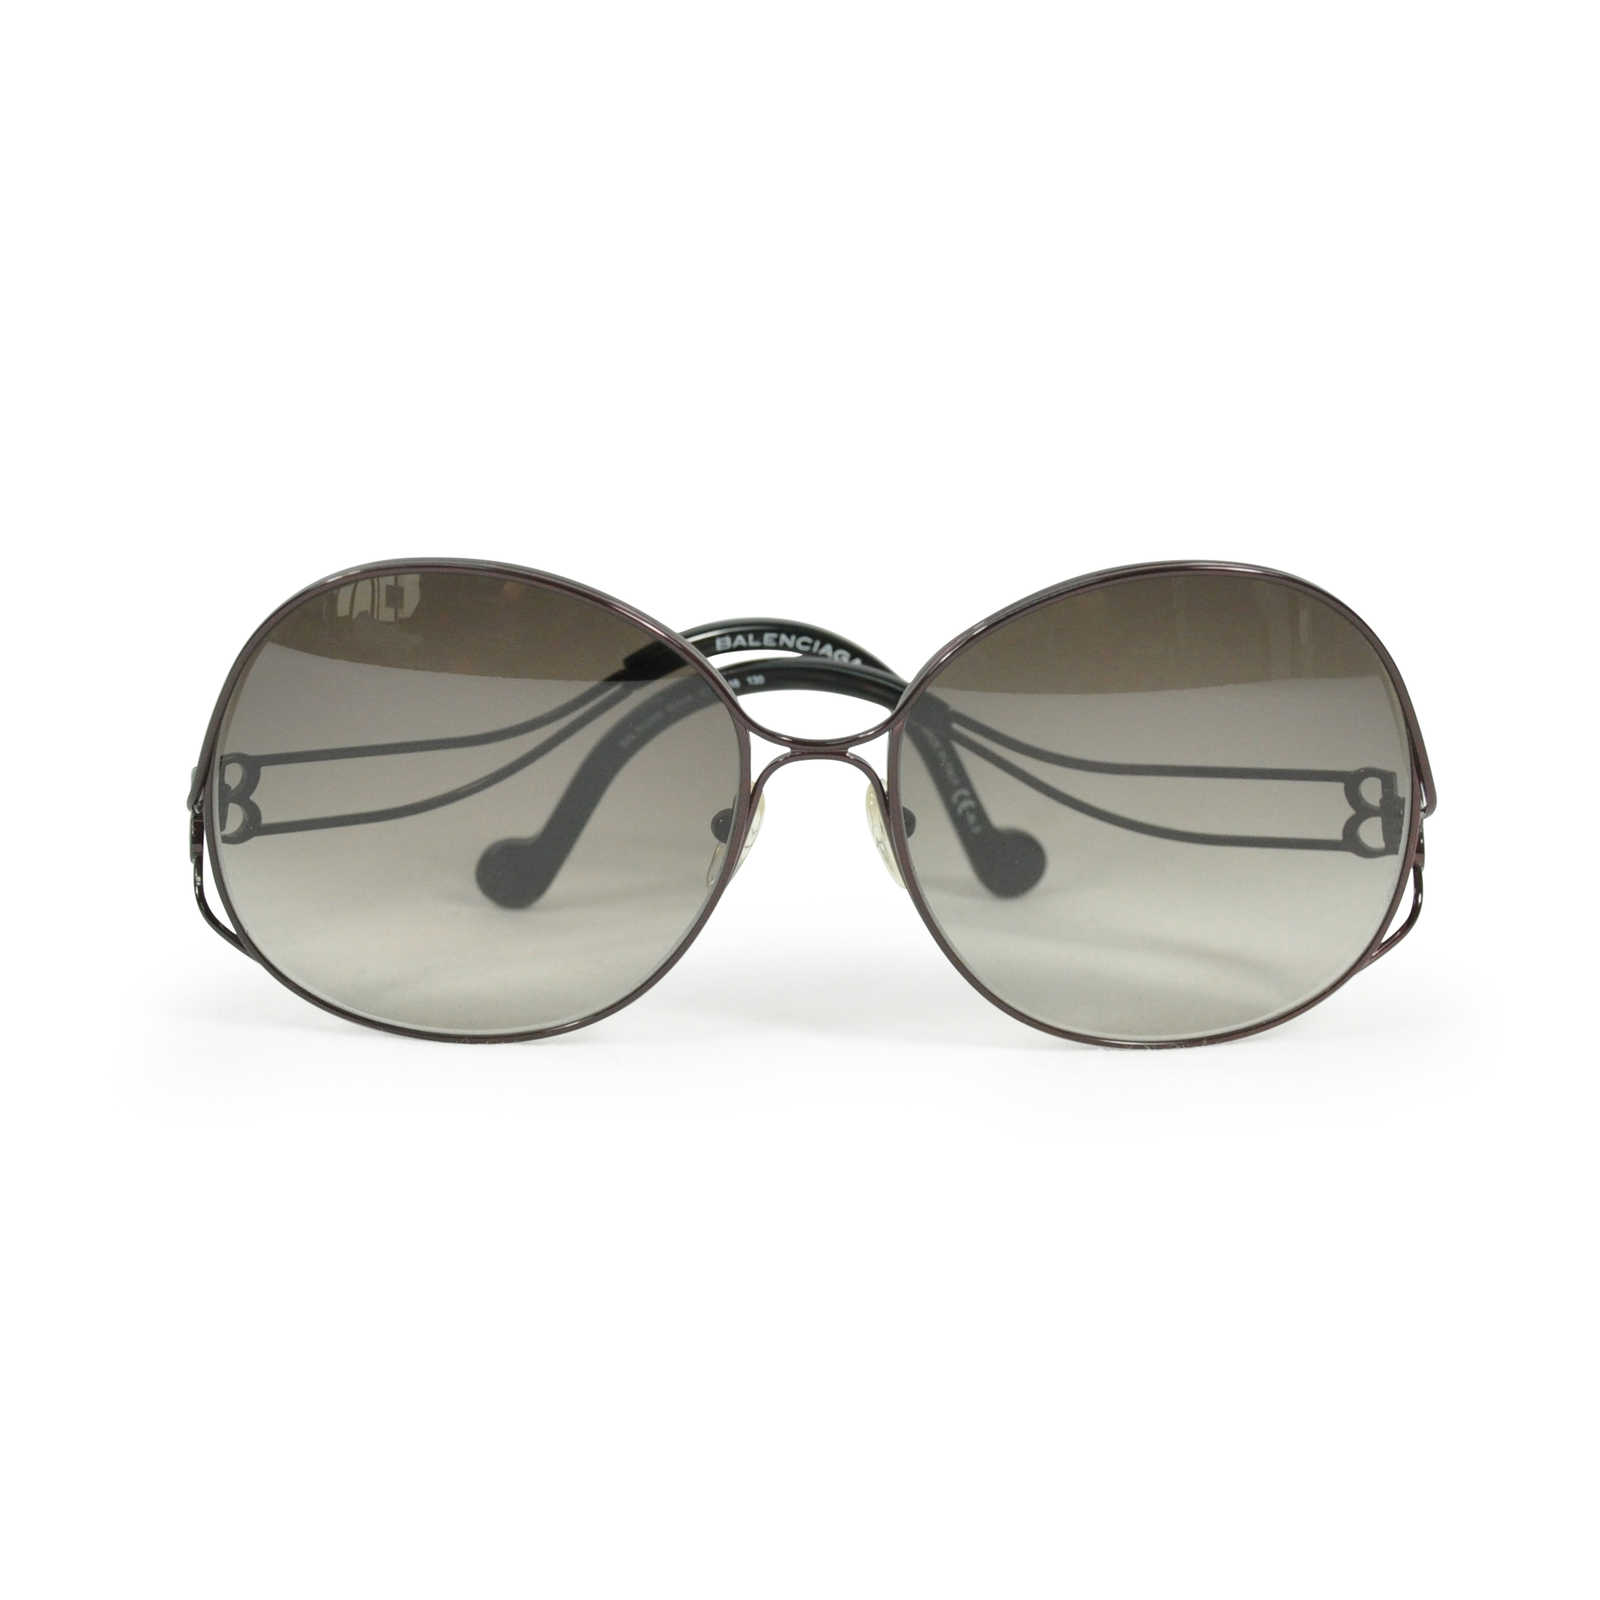 3c4d8484caa27 Tap to expand · Authentic Second Hand Balenciaga Brown Oversized Full Frame  Sunglasses (PSS-200-00363) ...